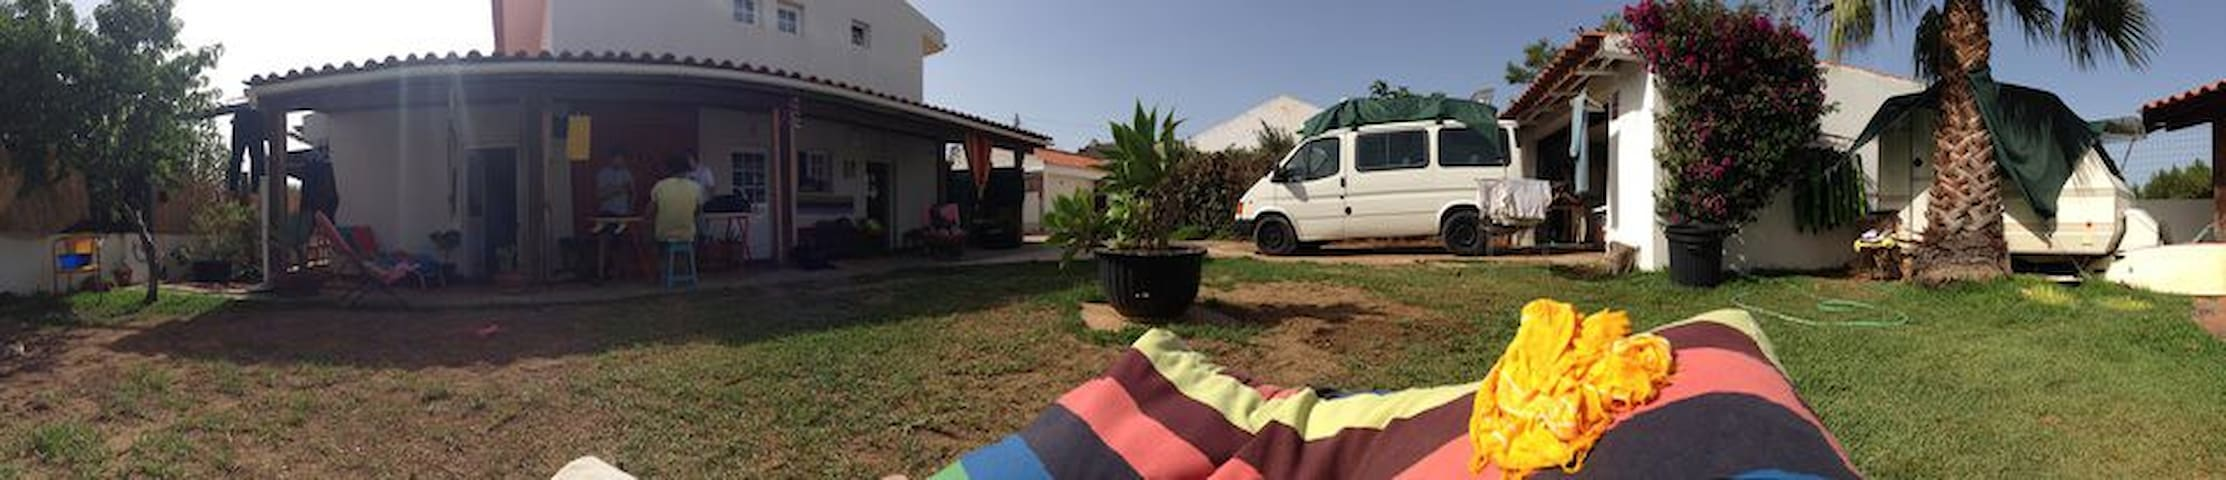 Surfcamp - Alcabideche - Bed & Breakfast